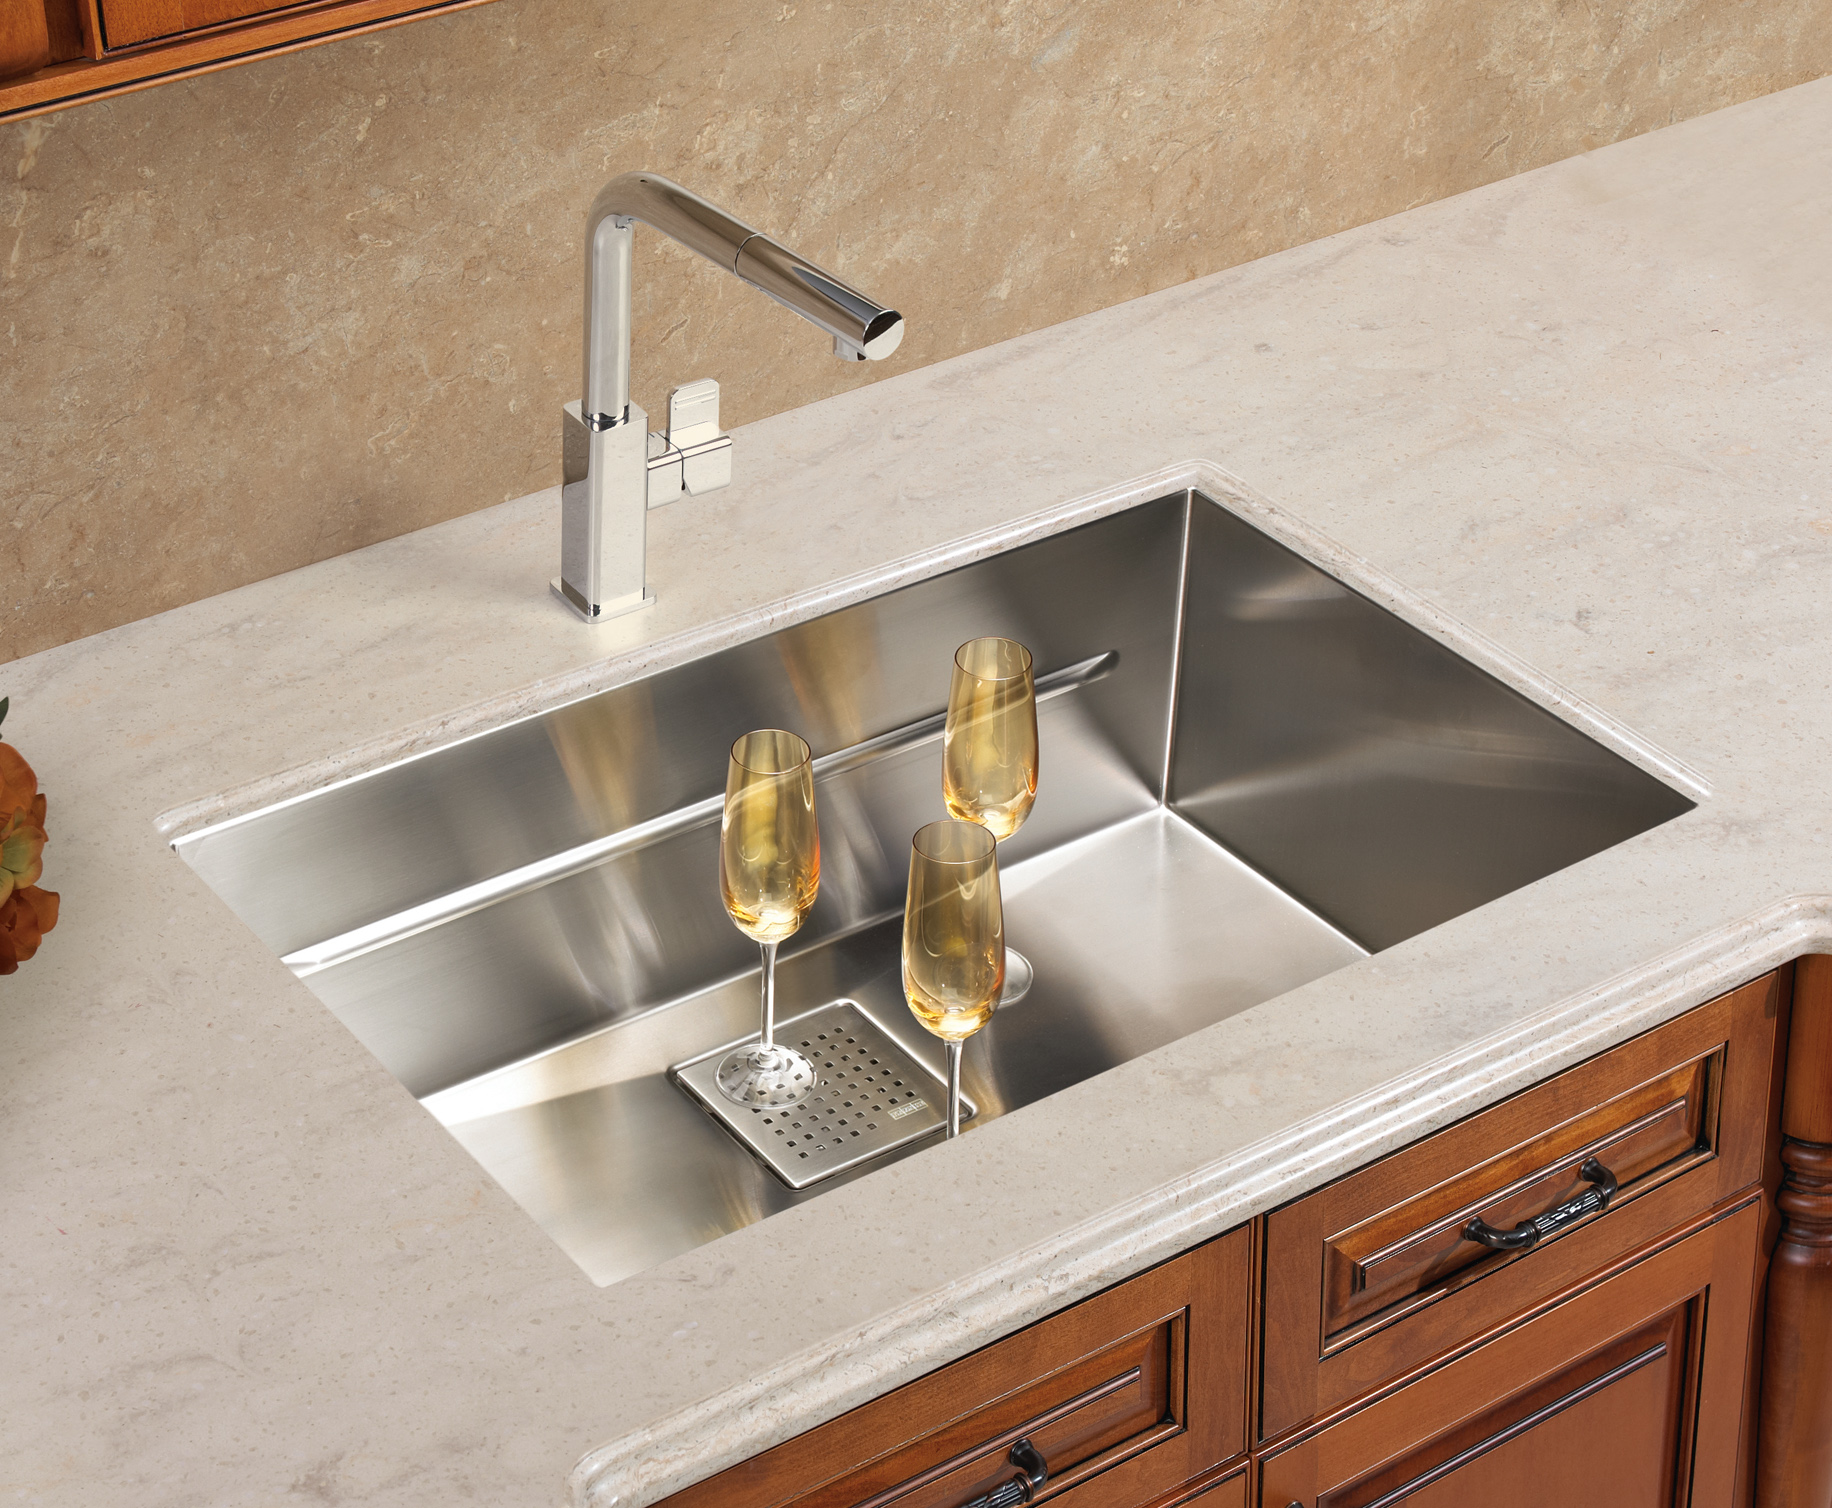 comment page 1 stainless kitchen sinks Advertisements